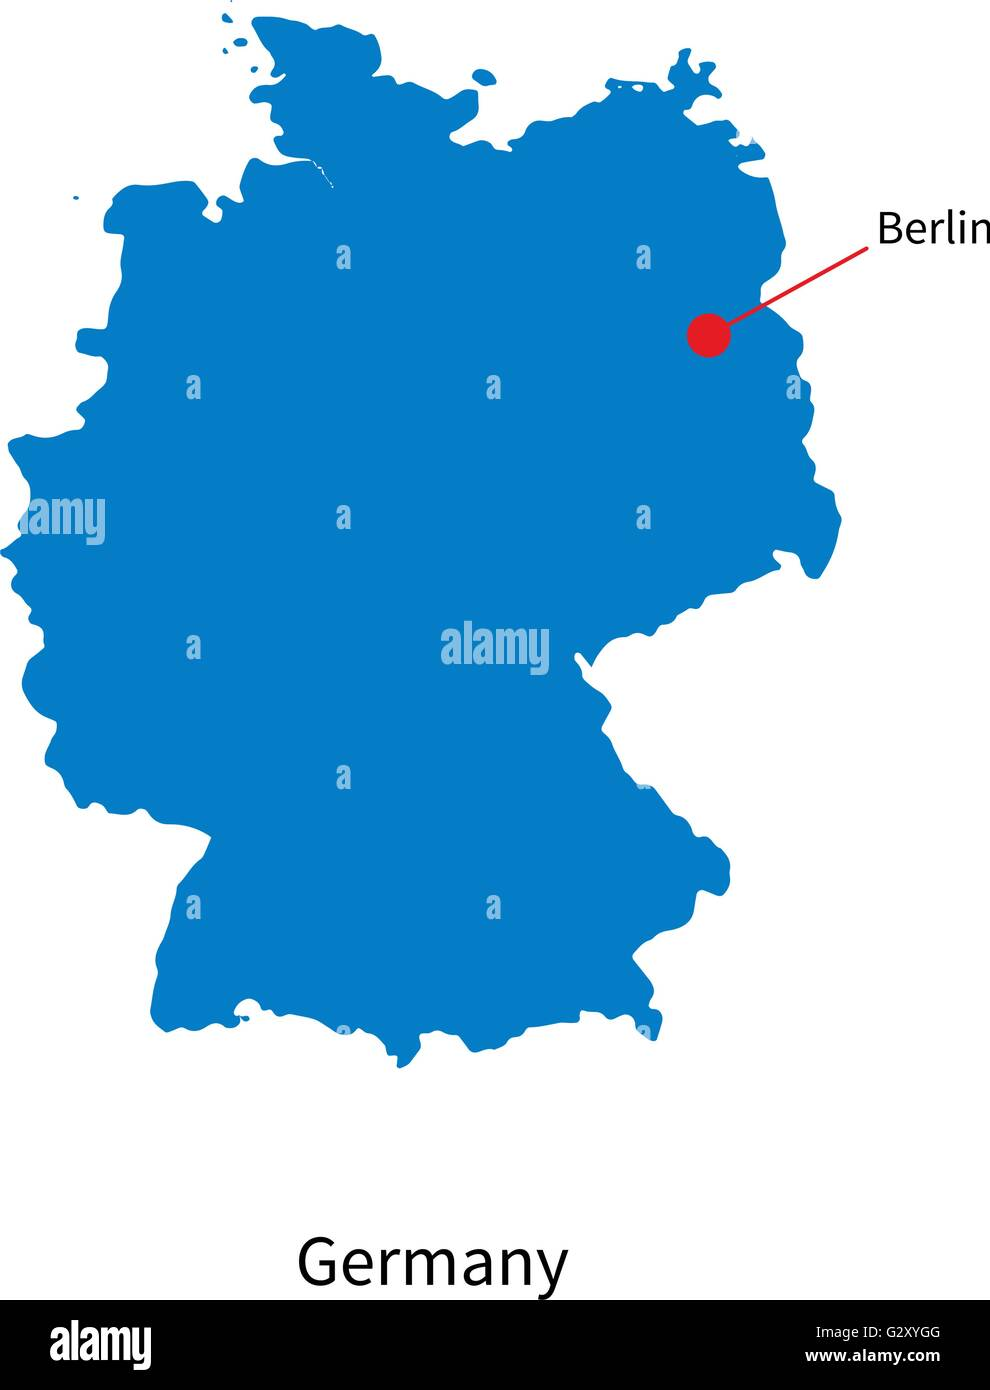 Detailed vector map of Germany and capital city Berlin Stock Vector